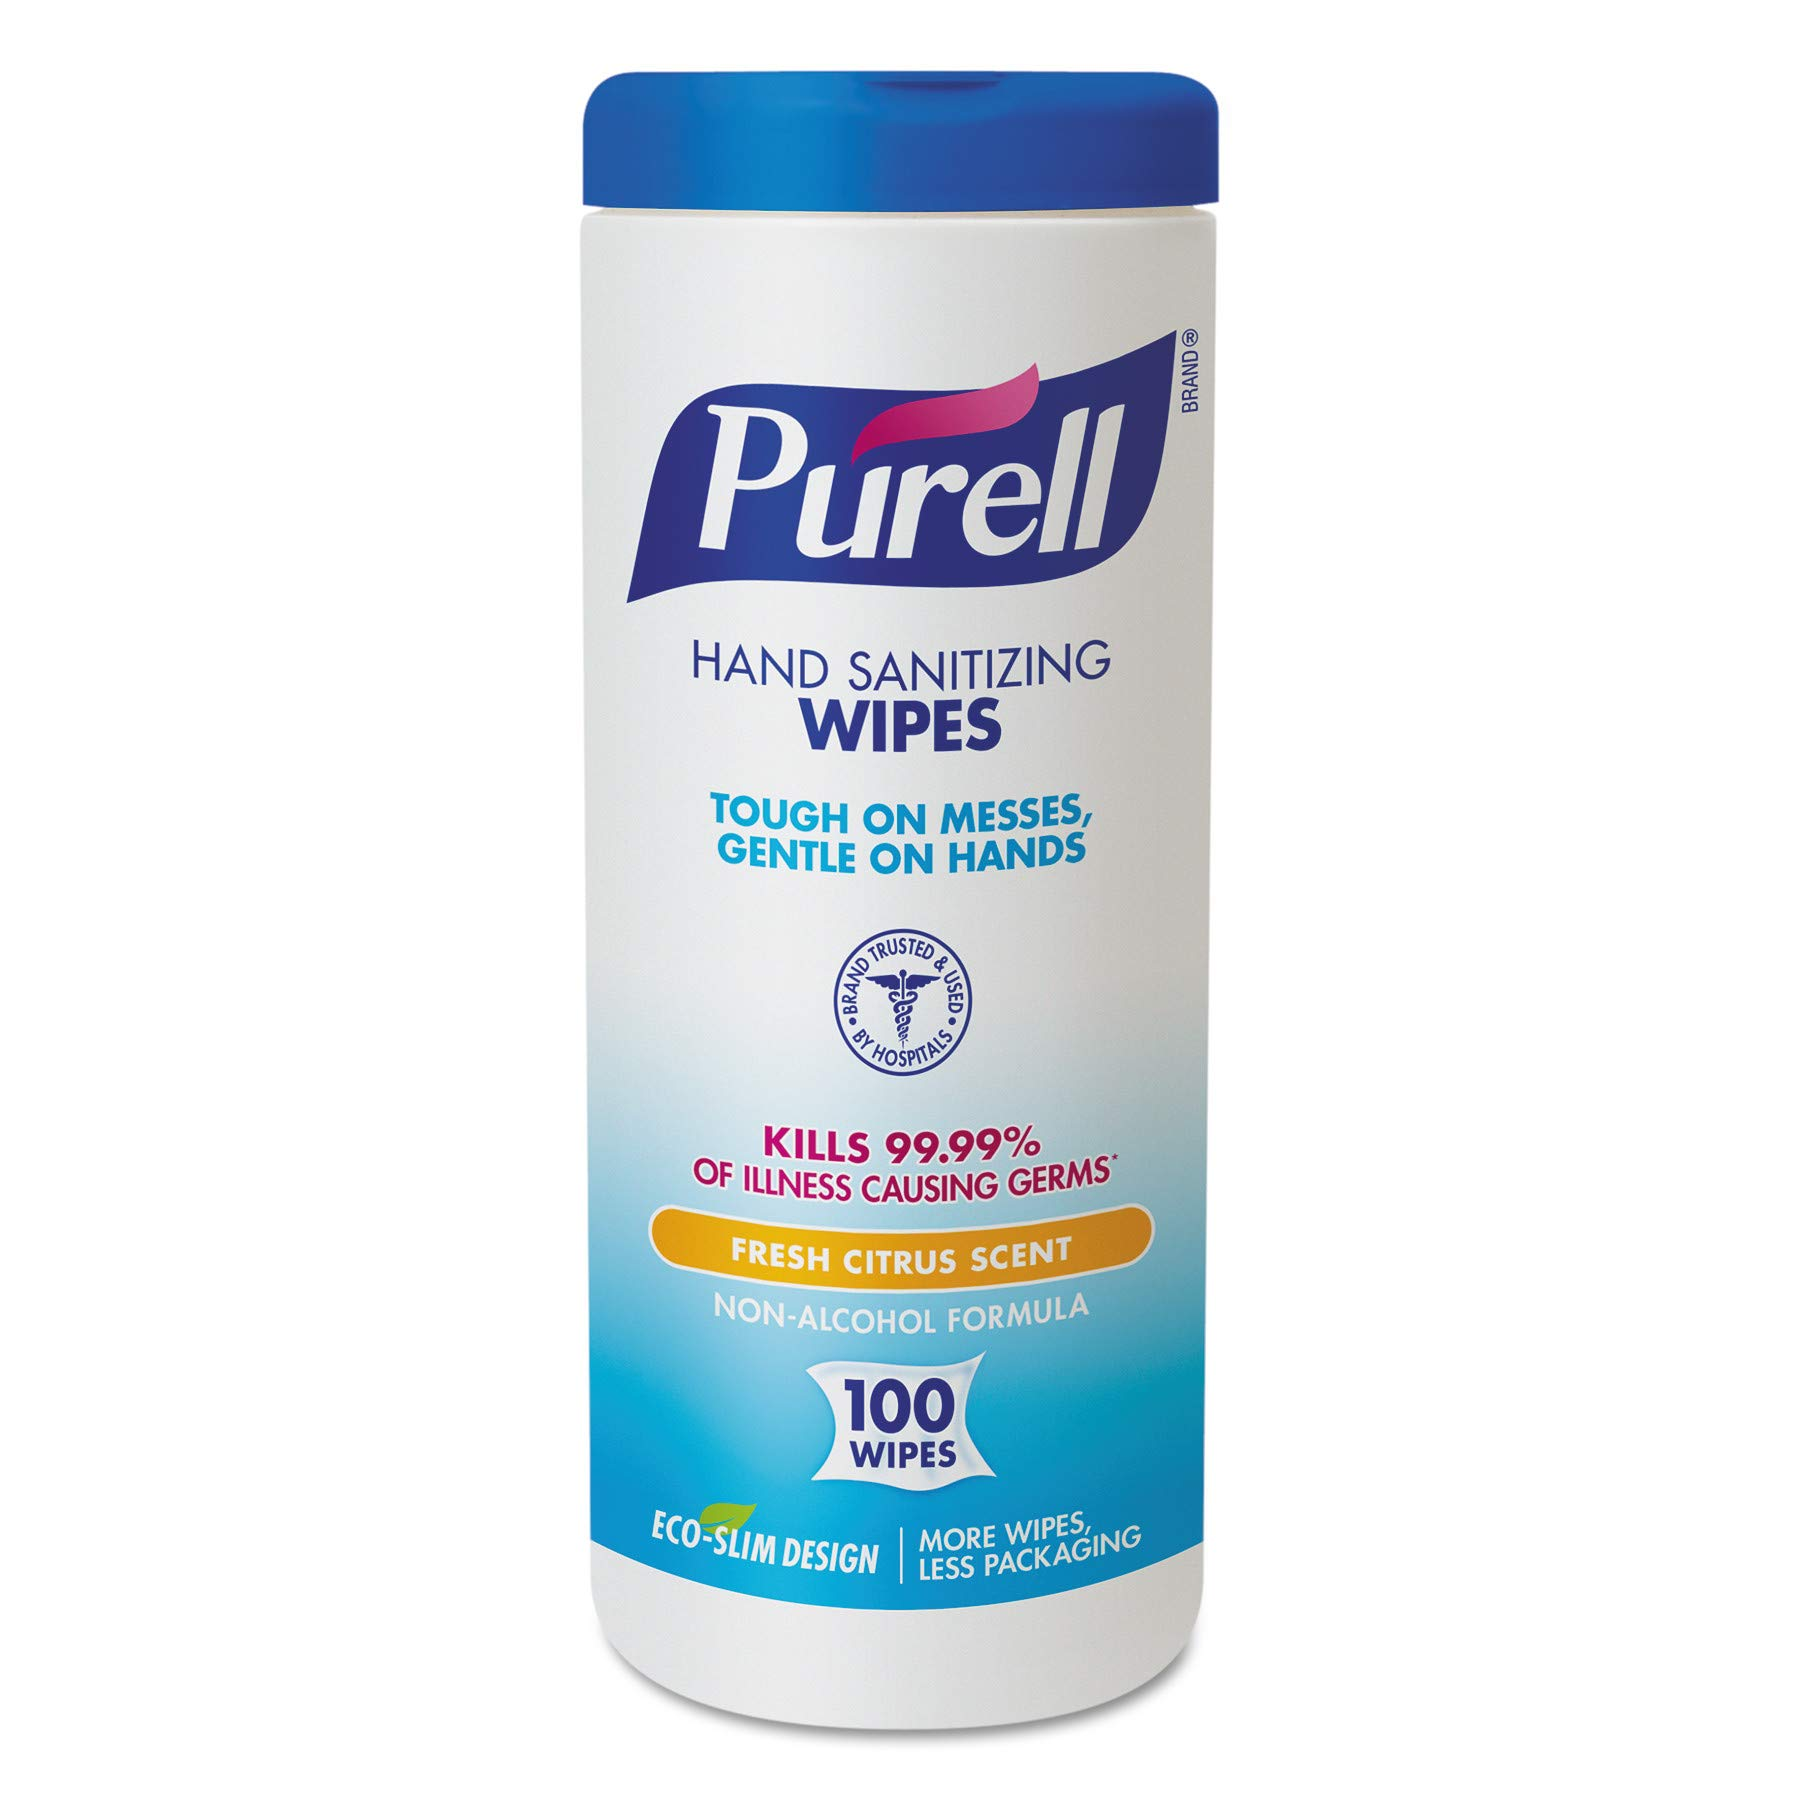 PURELL Hand Sanitizing Wipes, Fresh Citrus Scent, 100 Count Non-Linting Wipes Eco Slim Wipes Canisters (Case of 12) - 9111-12 by Purell (Image #1)